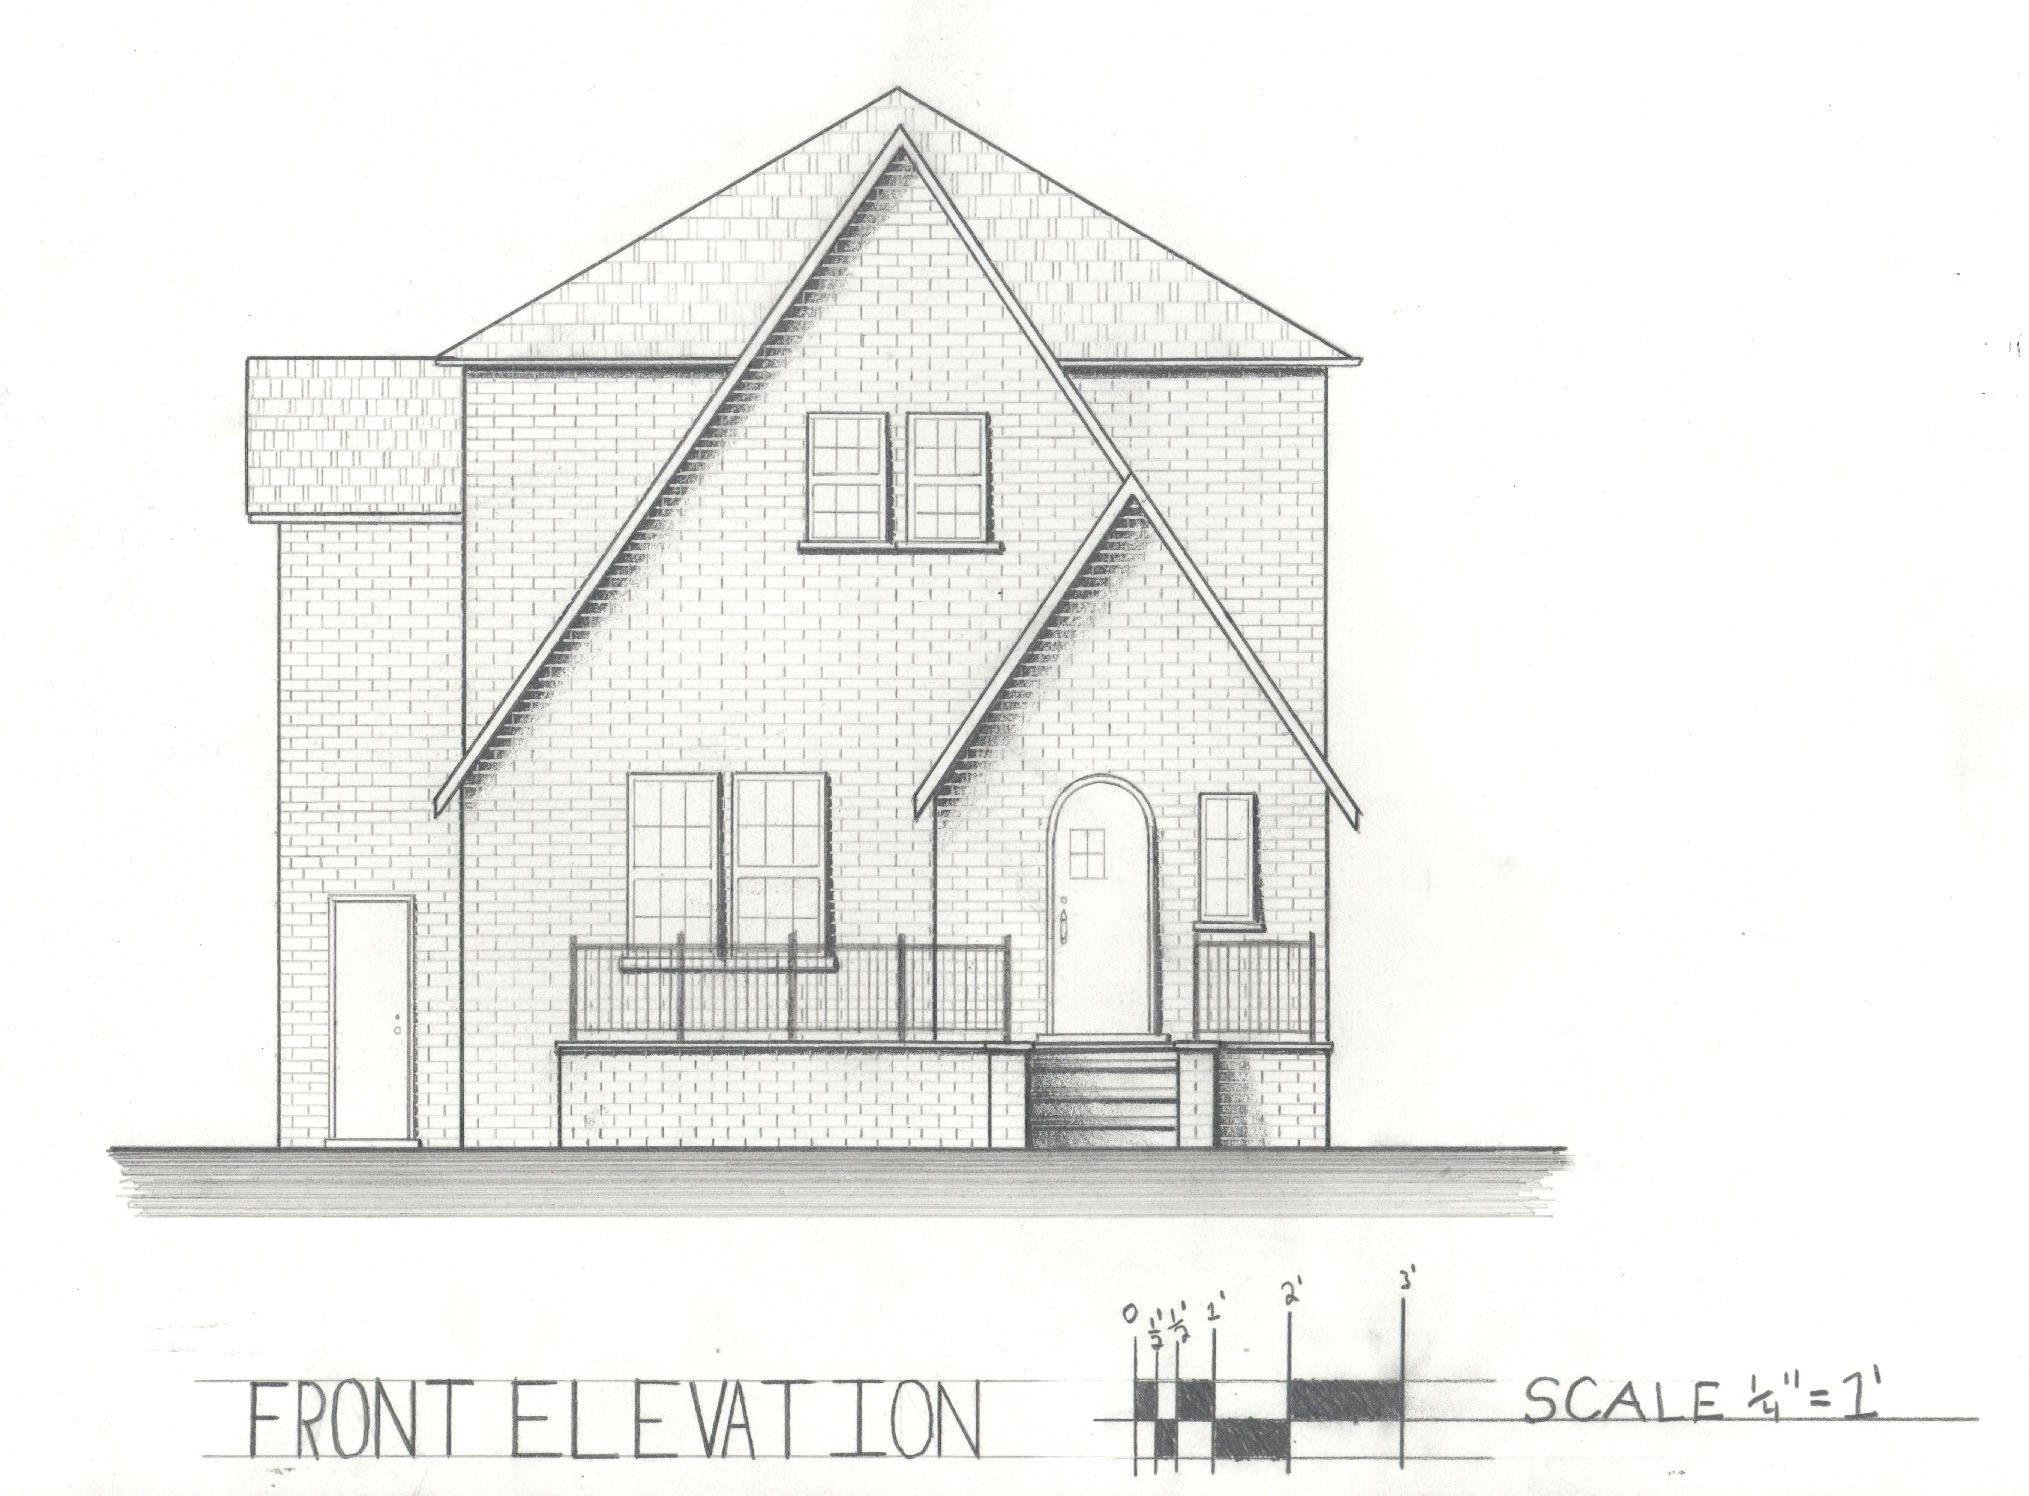 Front Elevation Design Drawing : Exterior elevation drawings ideas architecture plans